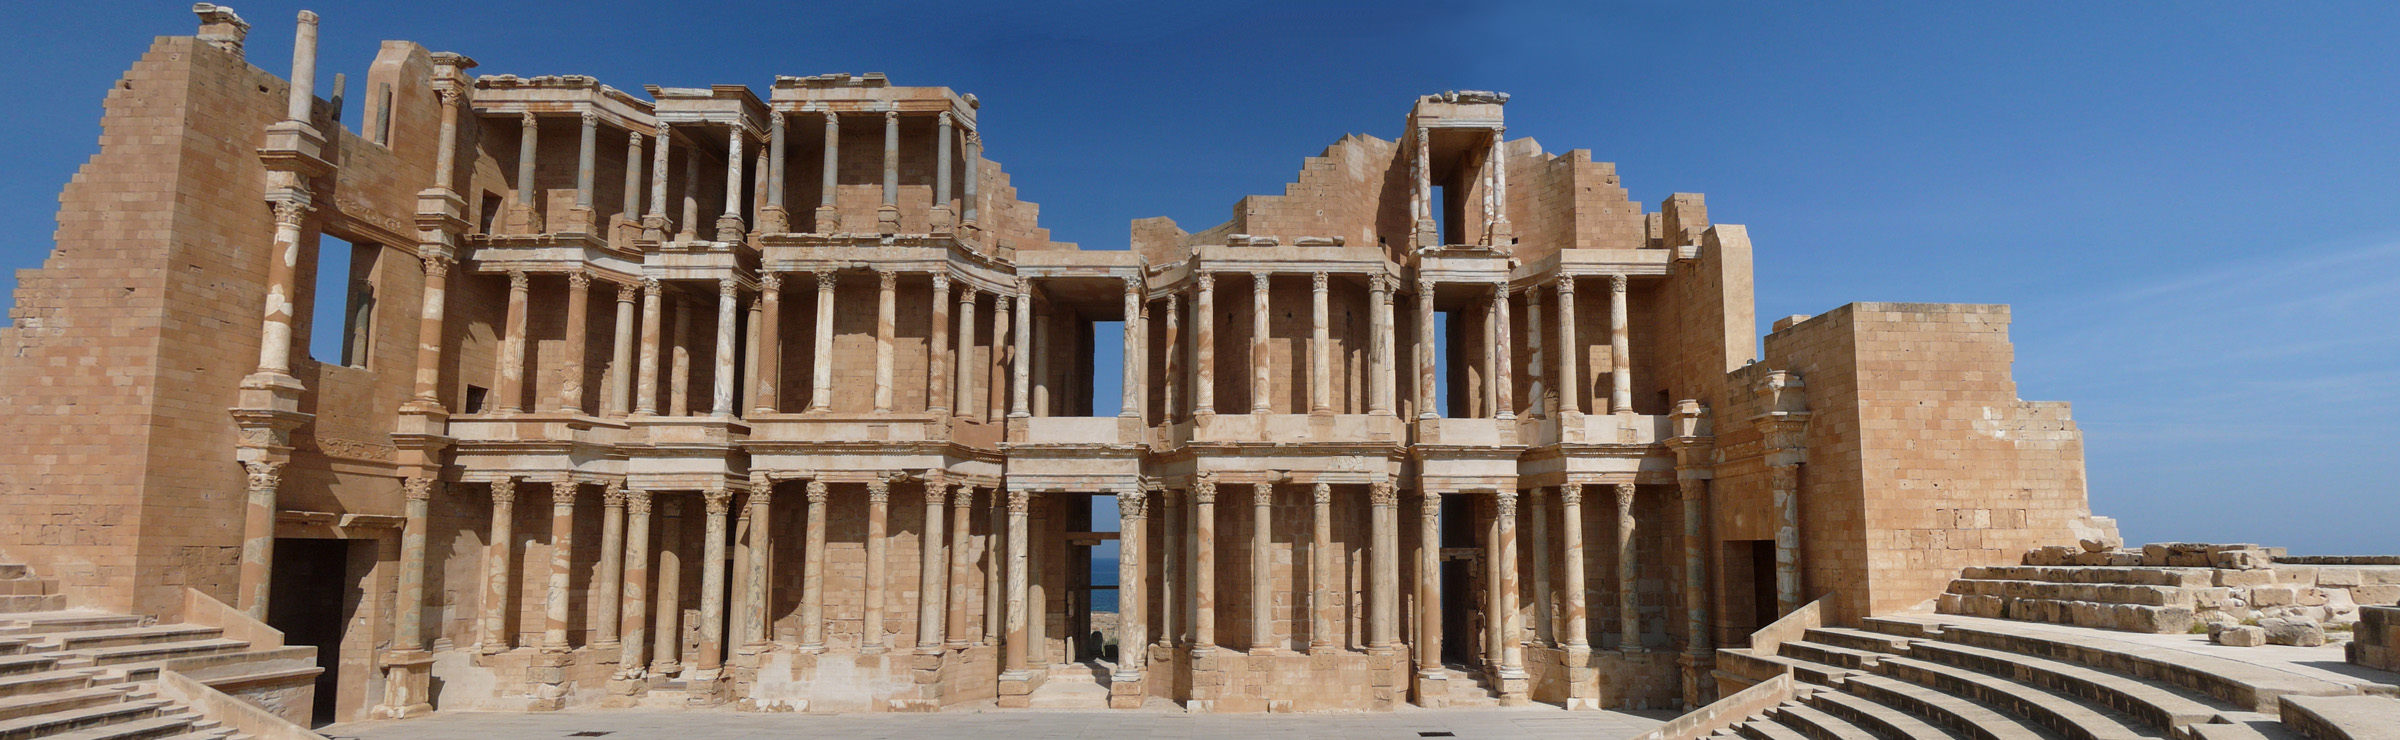 Theatre at Sabratha, Libya - by weesquirt